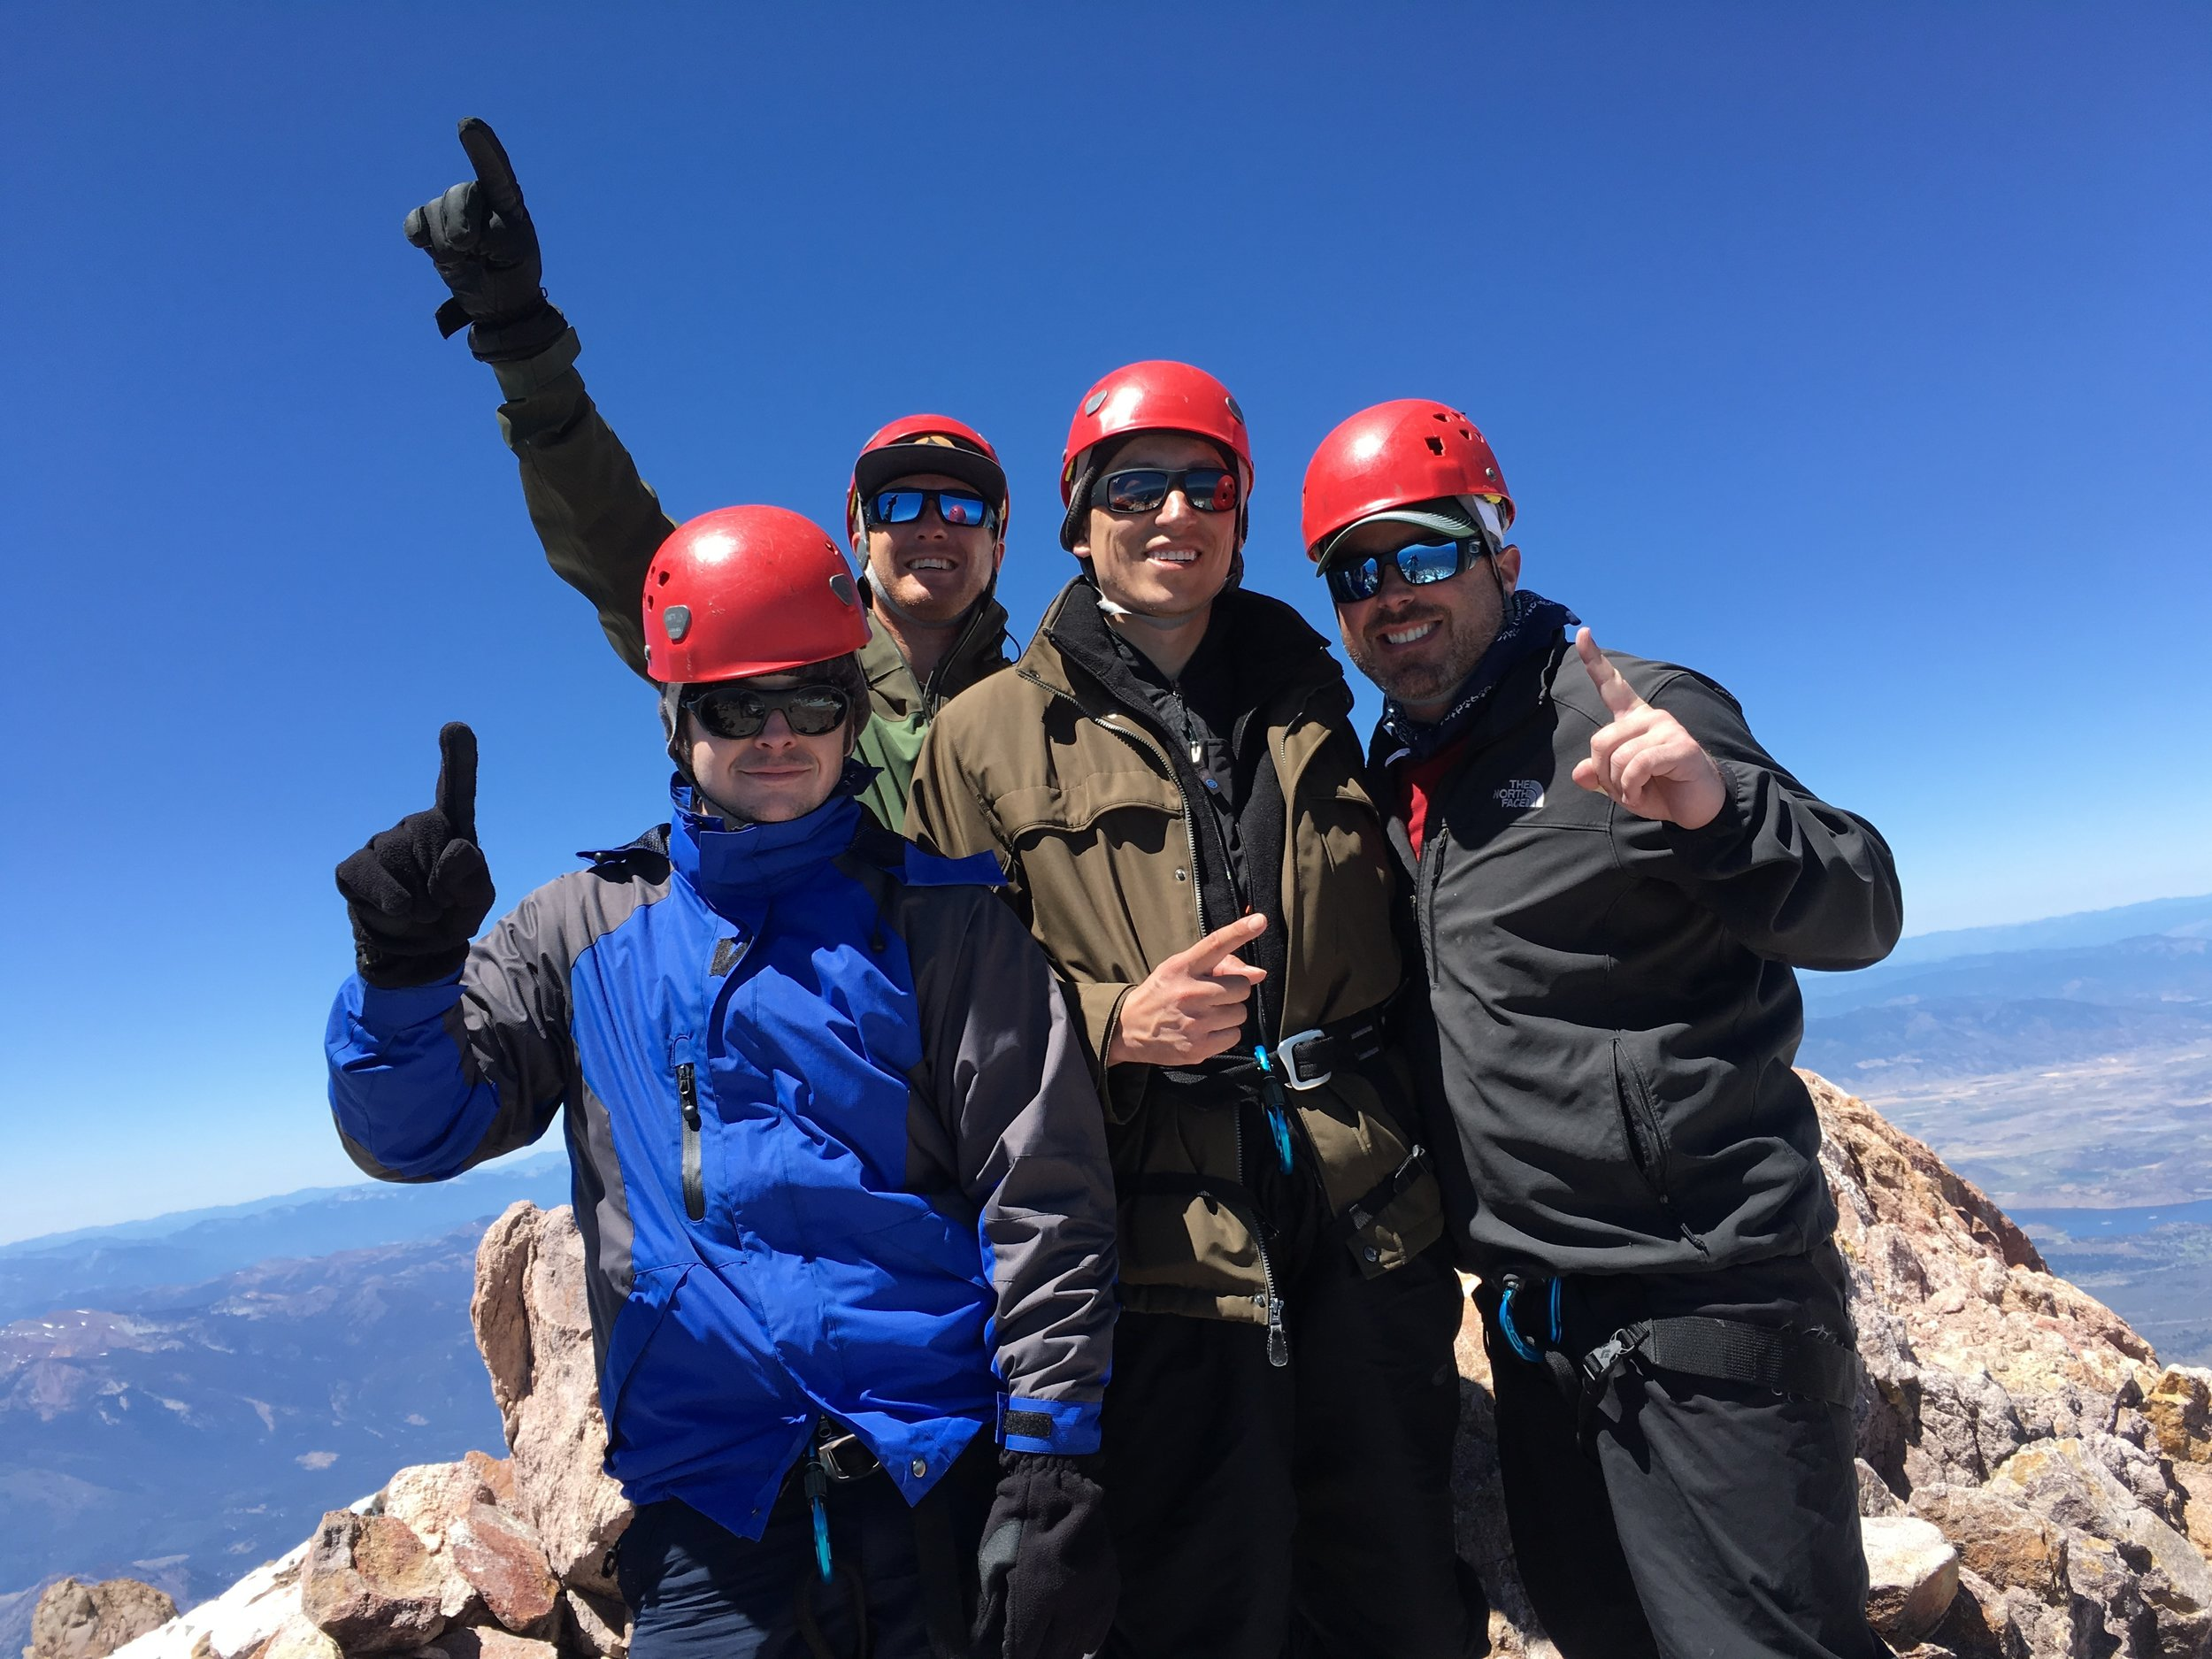 2016 - the CDR team climbs 14,180 feet to summit Mount Shasta